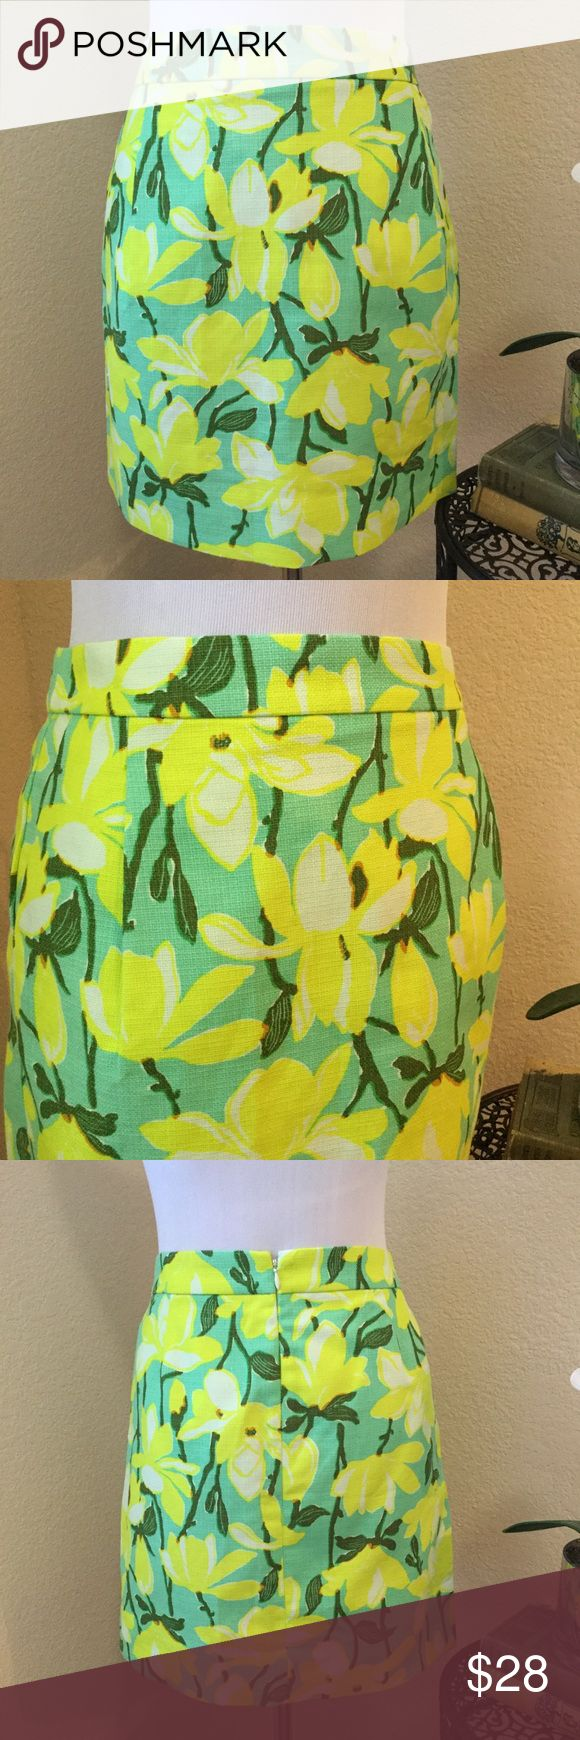 """J CREW Tropical Orchid Print Pencil Skirt Neon yellow, green and turquoise 100% cotton fully lined Floral pencil skirt in an striking orchid pattern. This skirt has a hidden back zipper and the fabric is medium weight and textured. Like new flawless condition. Wear with a white tank top and Jack Rogers. Waist: 15"""". Length: 17"""". J. Crew Skirts Mini"""